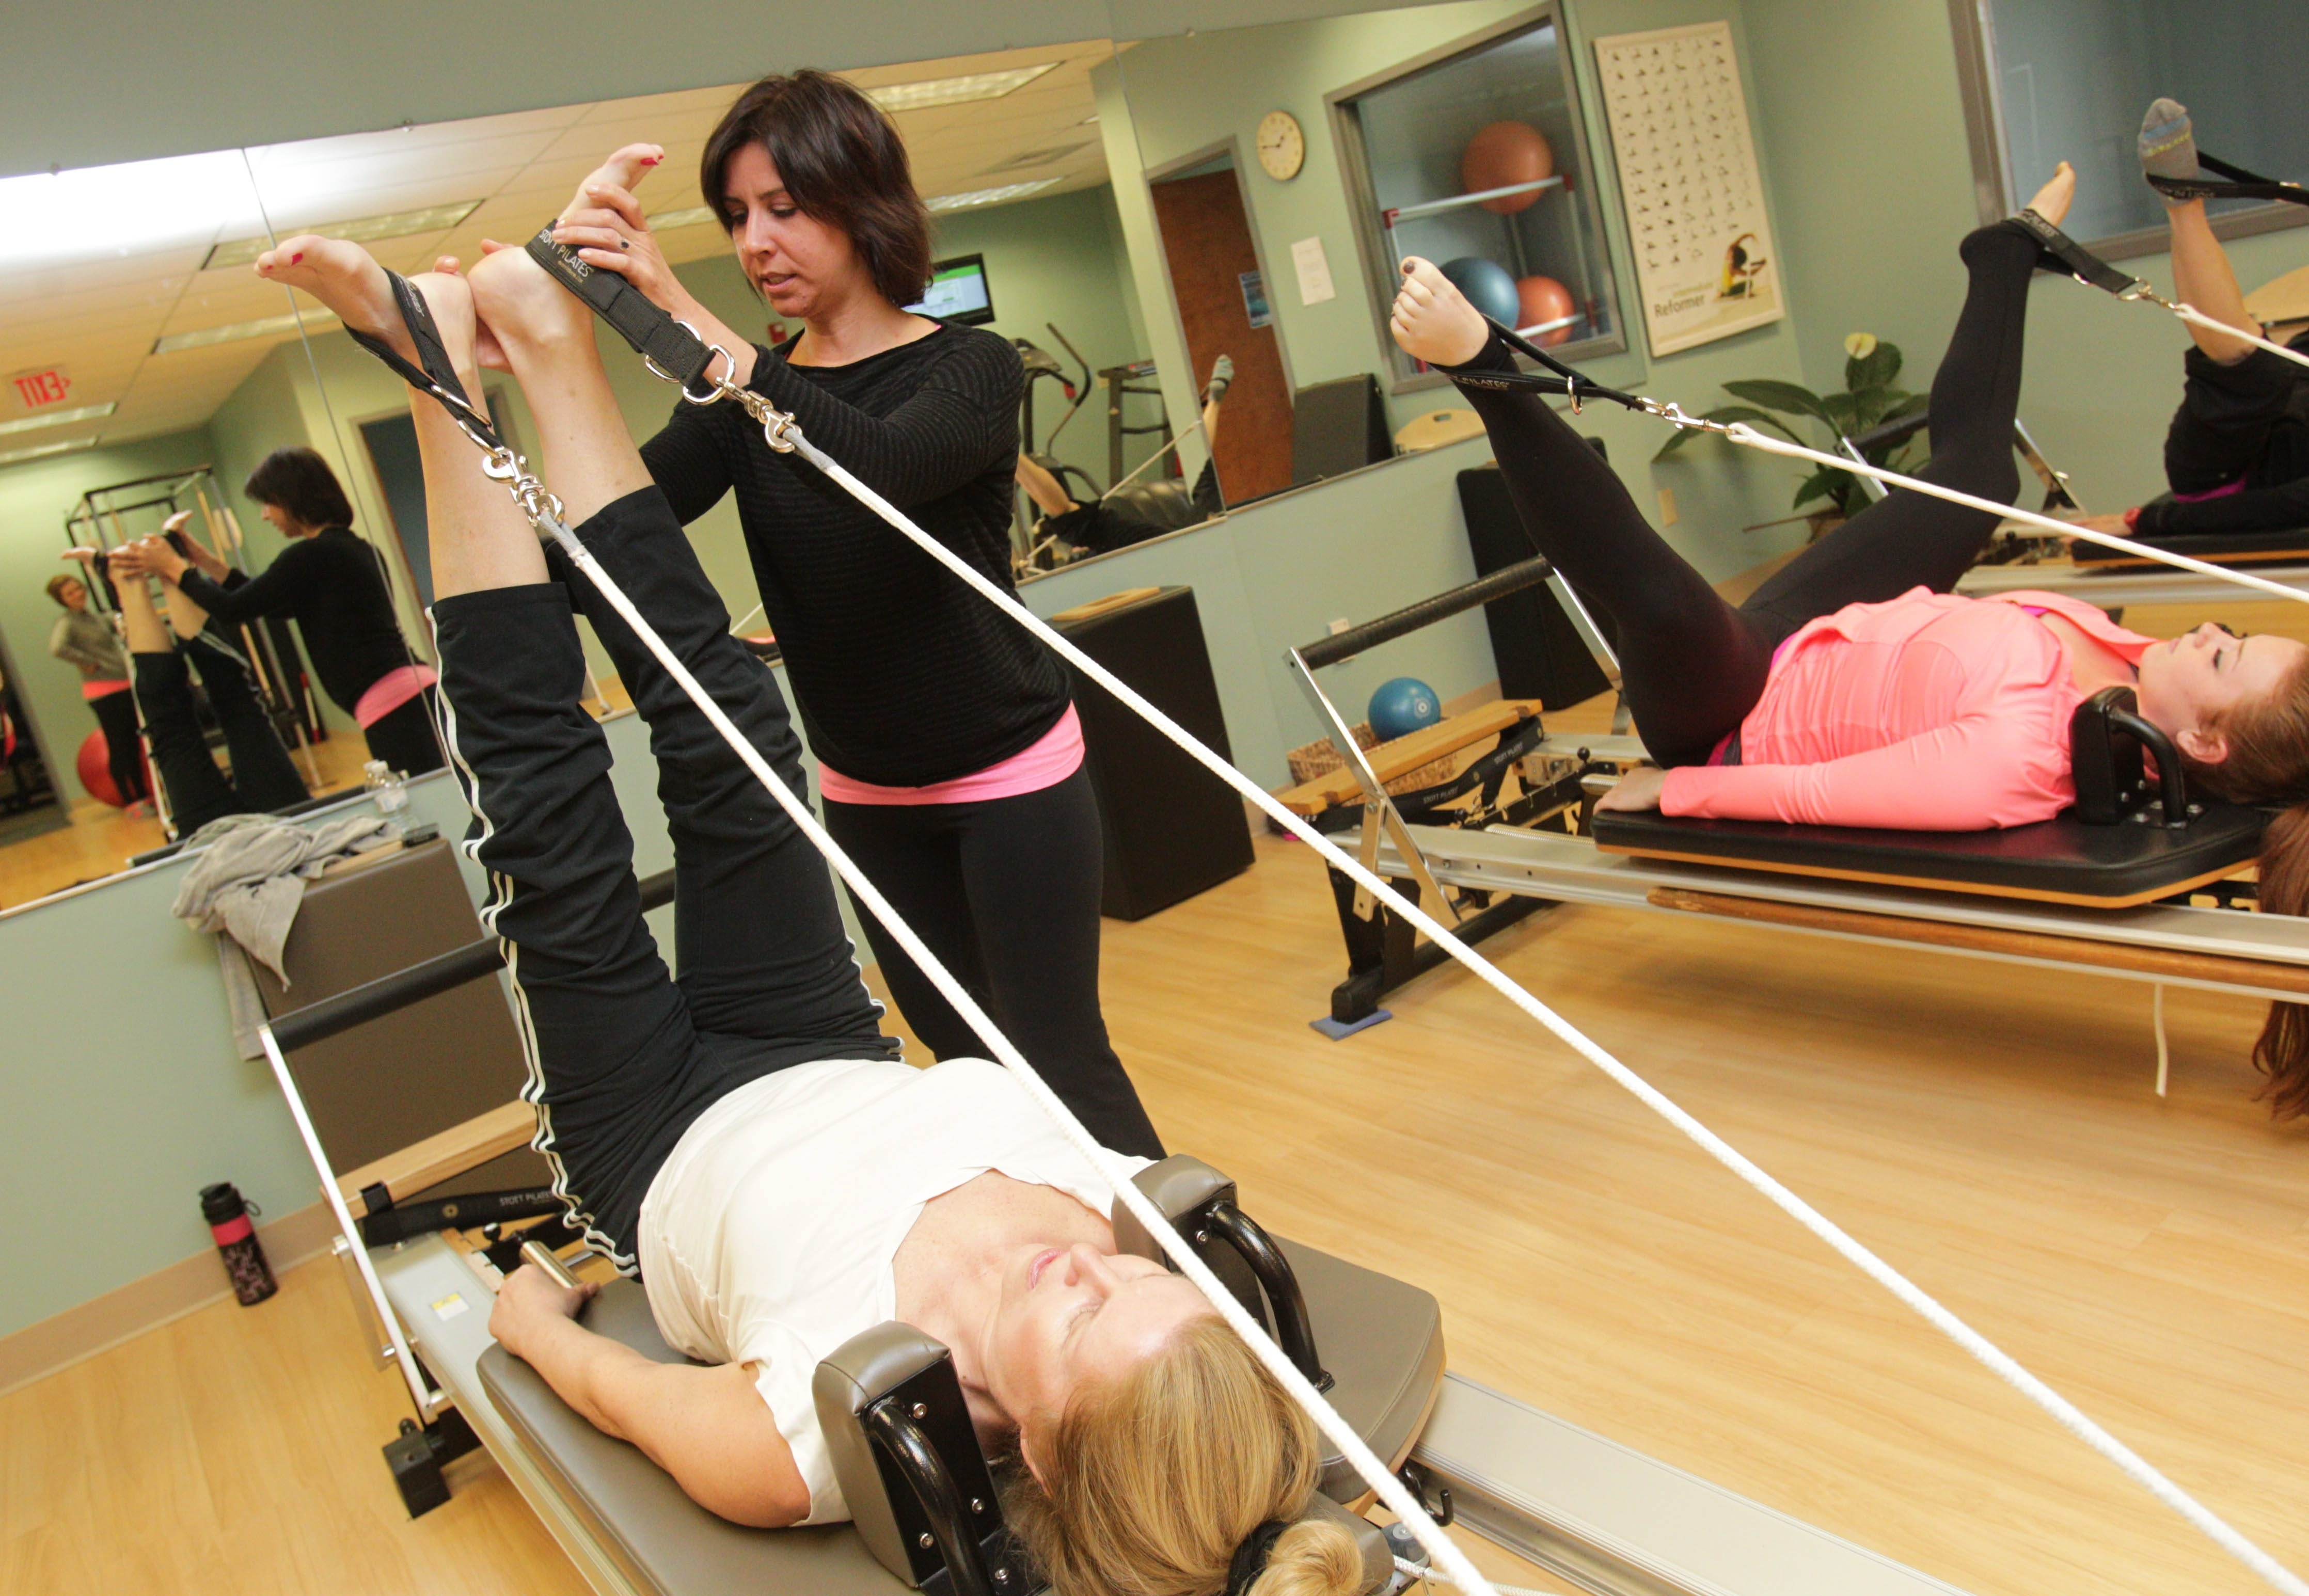 Larissa Mychaskiw, owner of Stretch Pilates & Fitness on Wehrle Drive in Williamsville, works with member Amy Pecoraro.